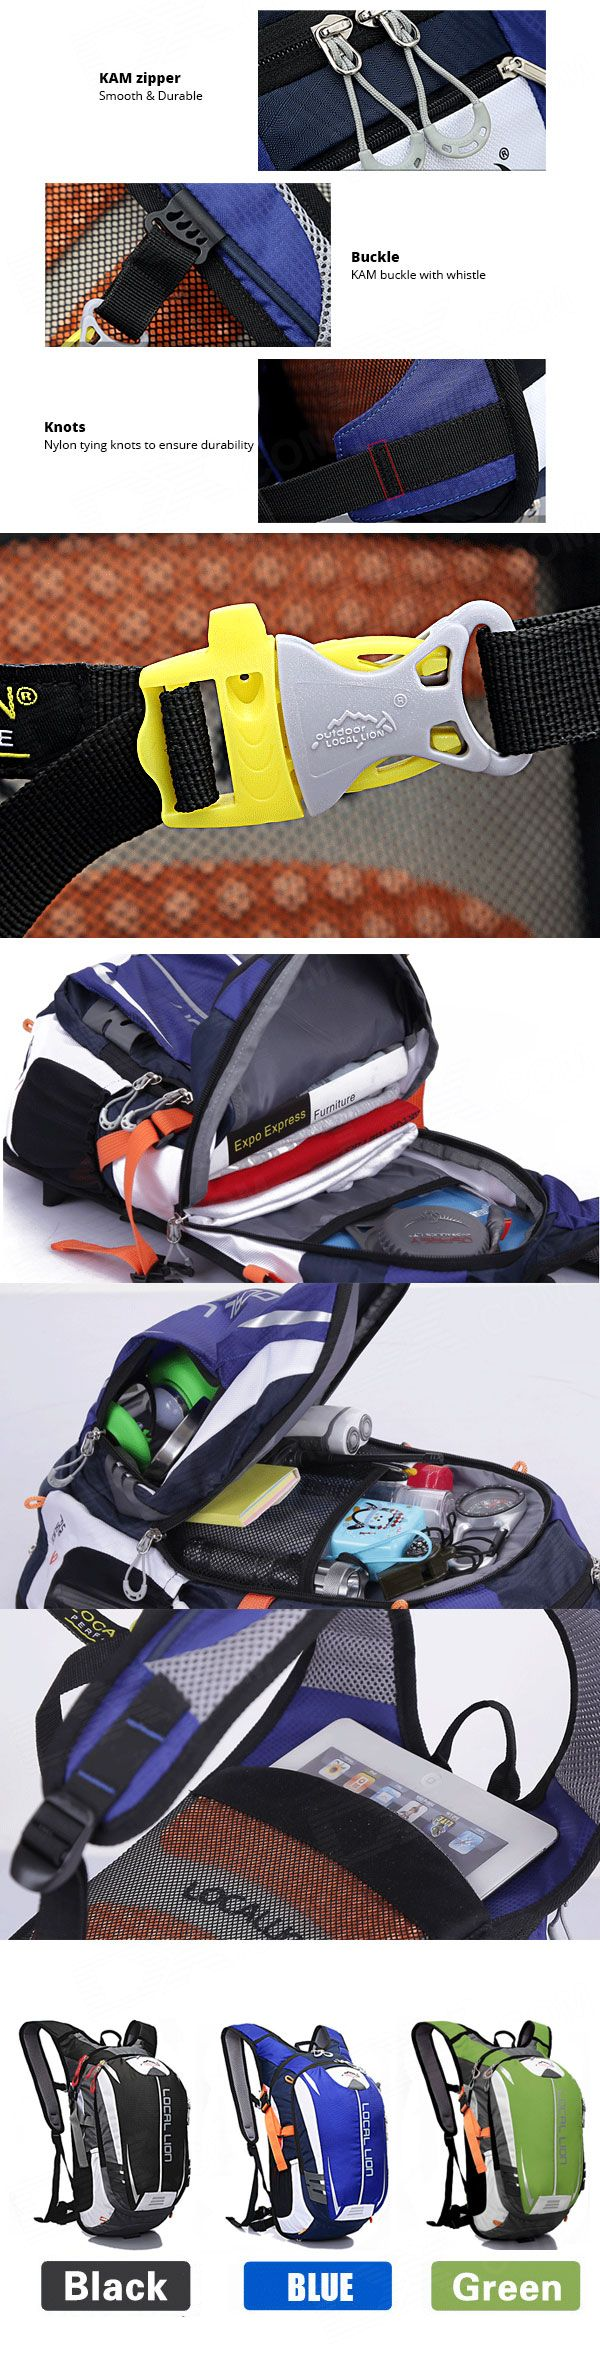 LOCAL LION Outdoor Cycling Double Shoulder Backpack Bag - Blue + Black - Free Shipping - DealExtreme